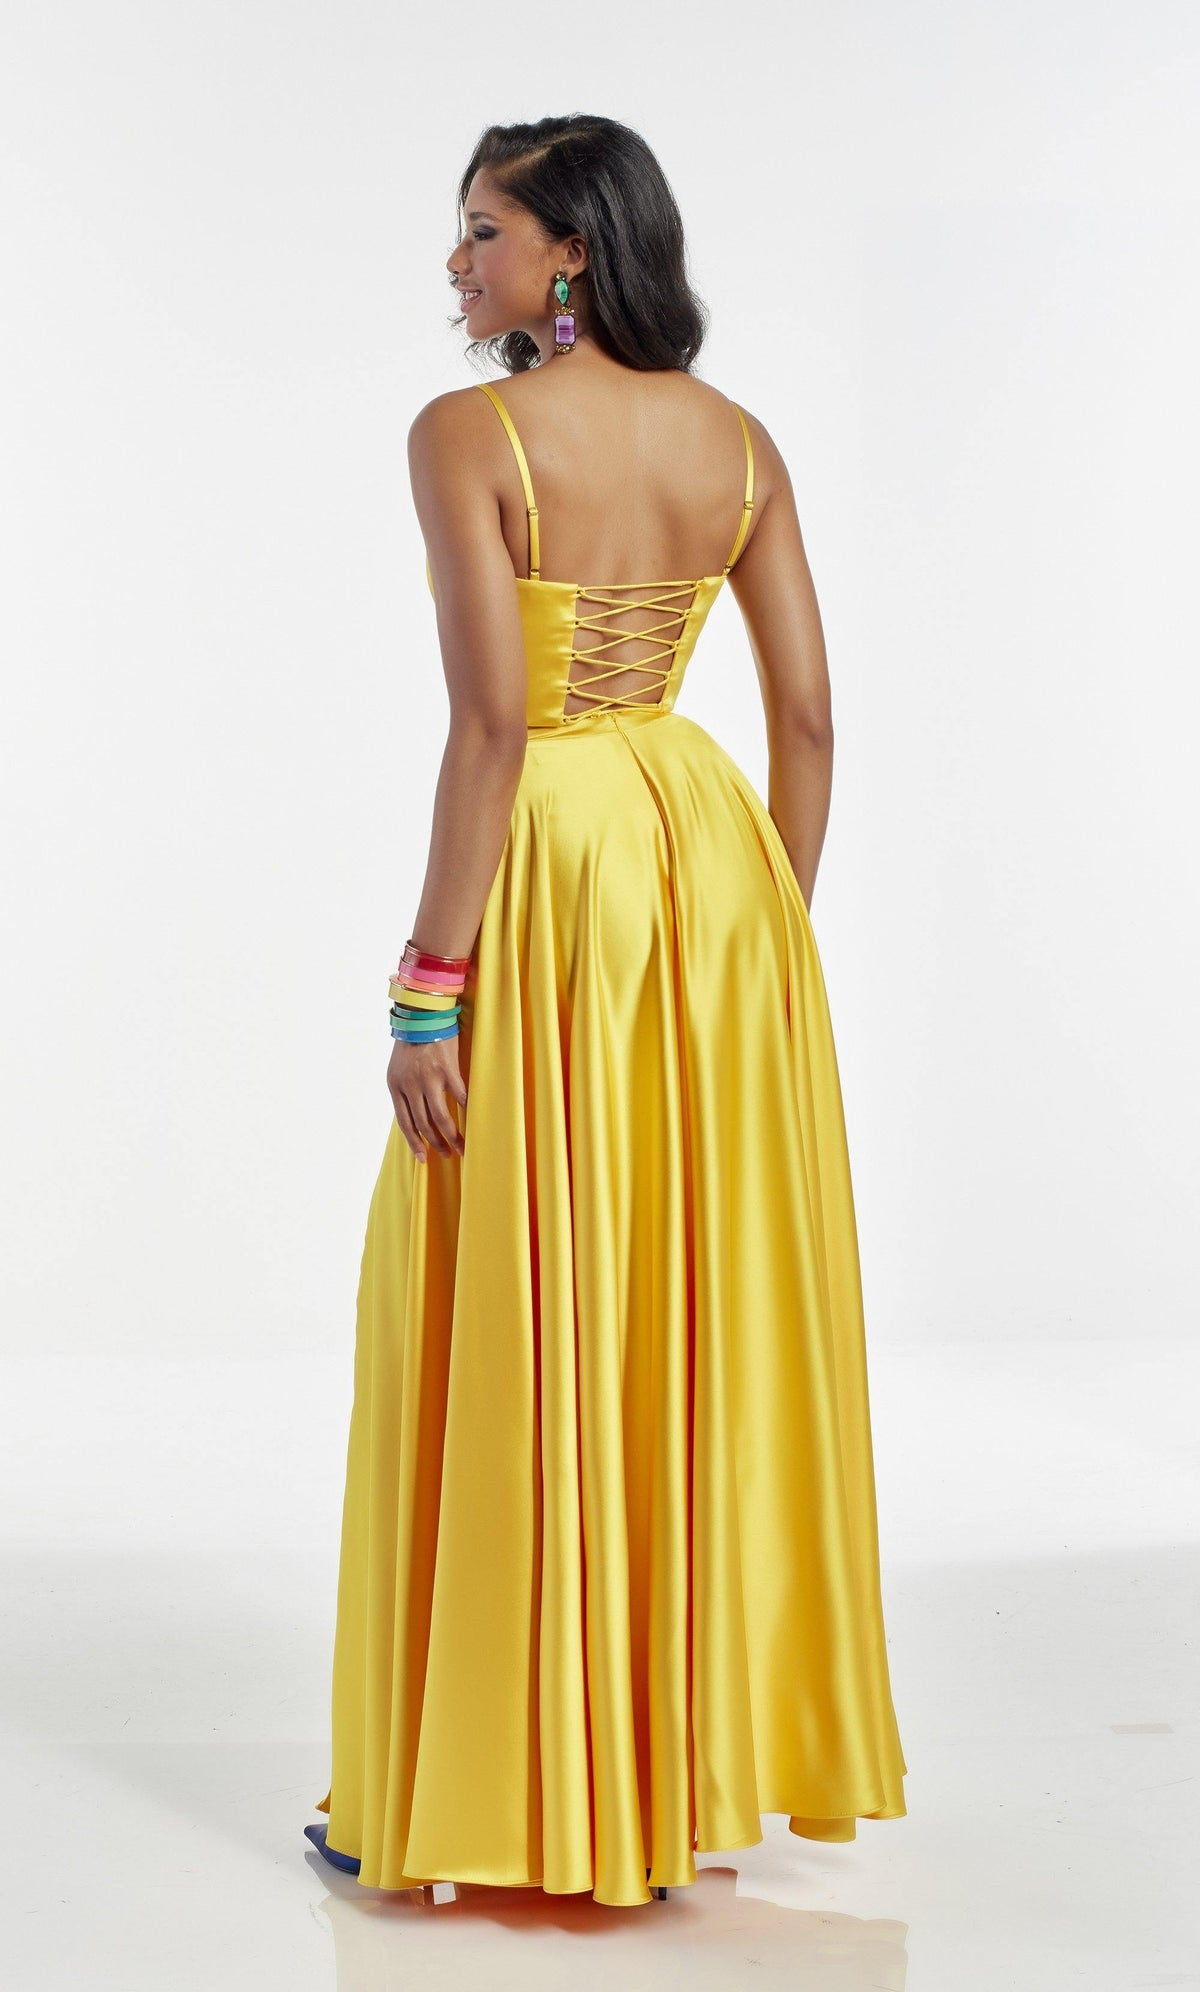 Bright Yellow two piece formal dress with a lace up back and adjustable straps